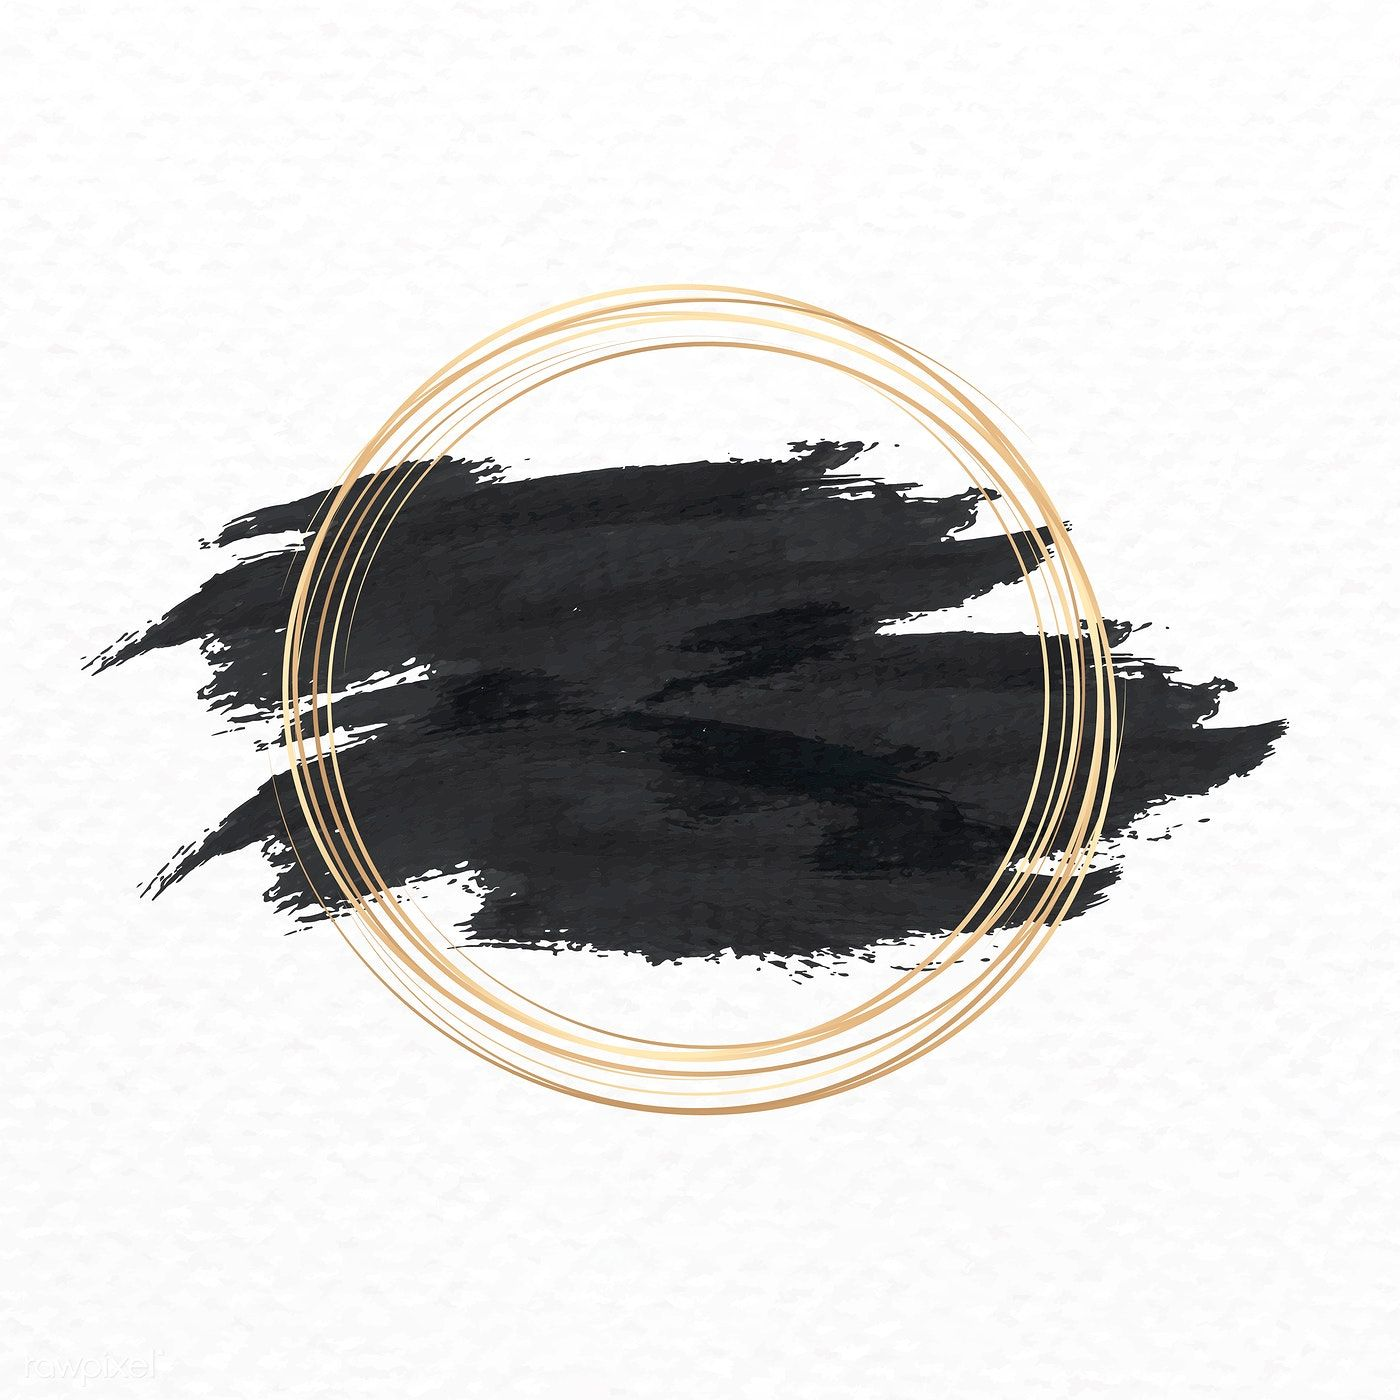 Download free vector of Gold circle frame on a black background vector